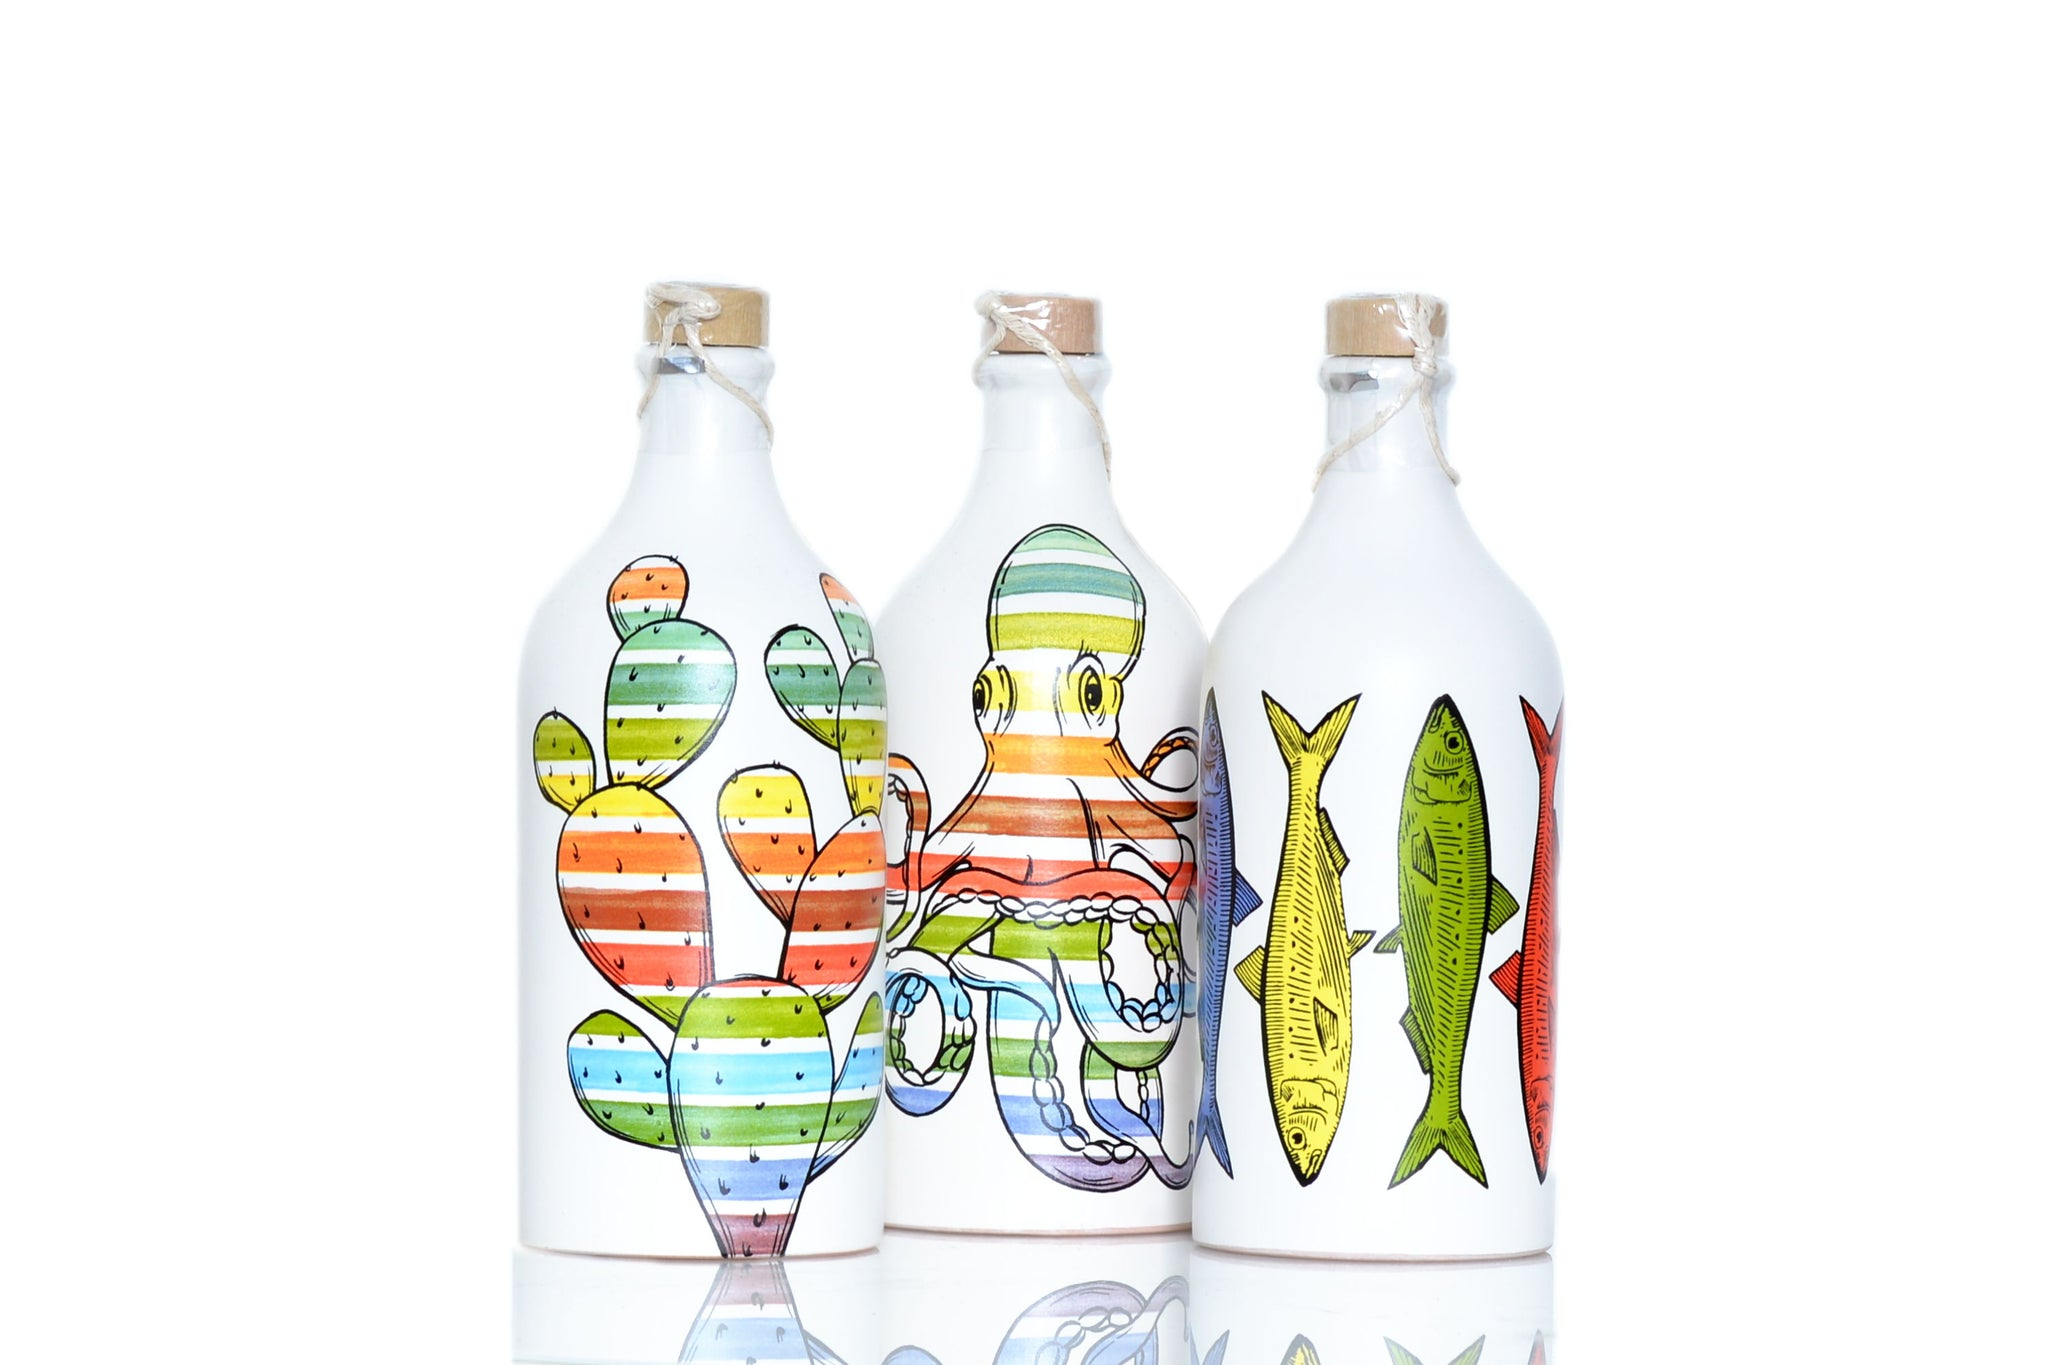 Frantoio Muraglia Pop Art Ceramic Bottles Extra Virgin Olive Oil 500ml 3 bottles